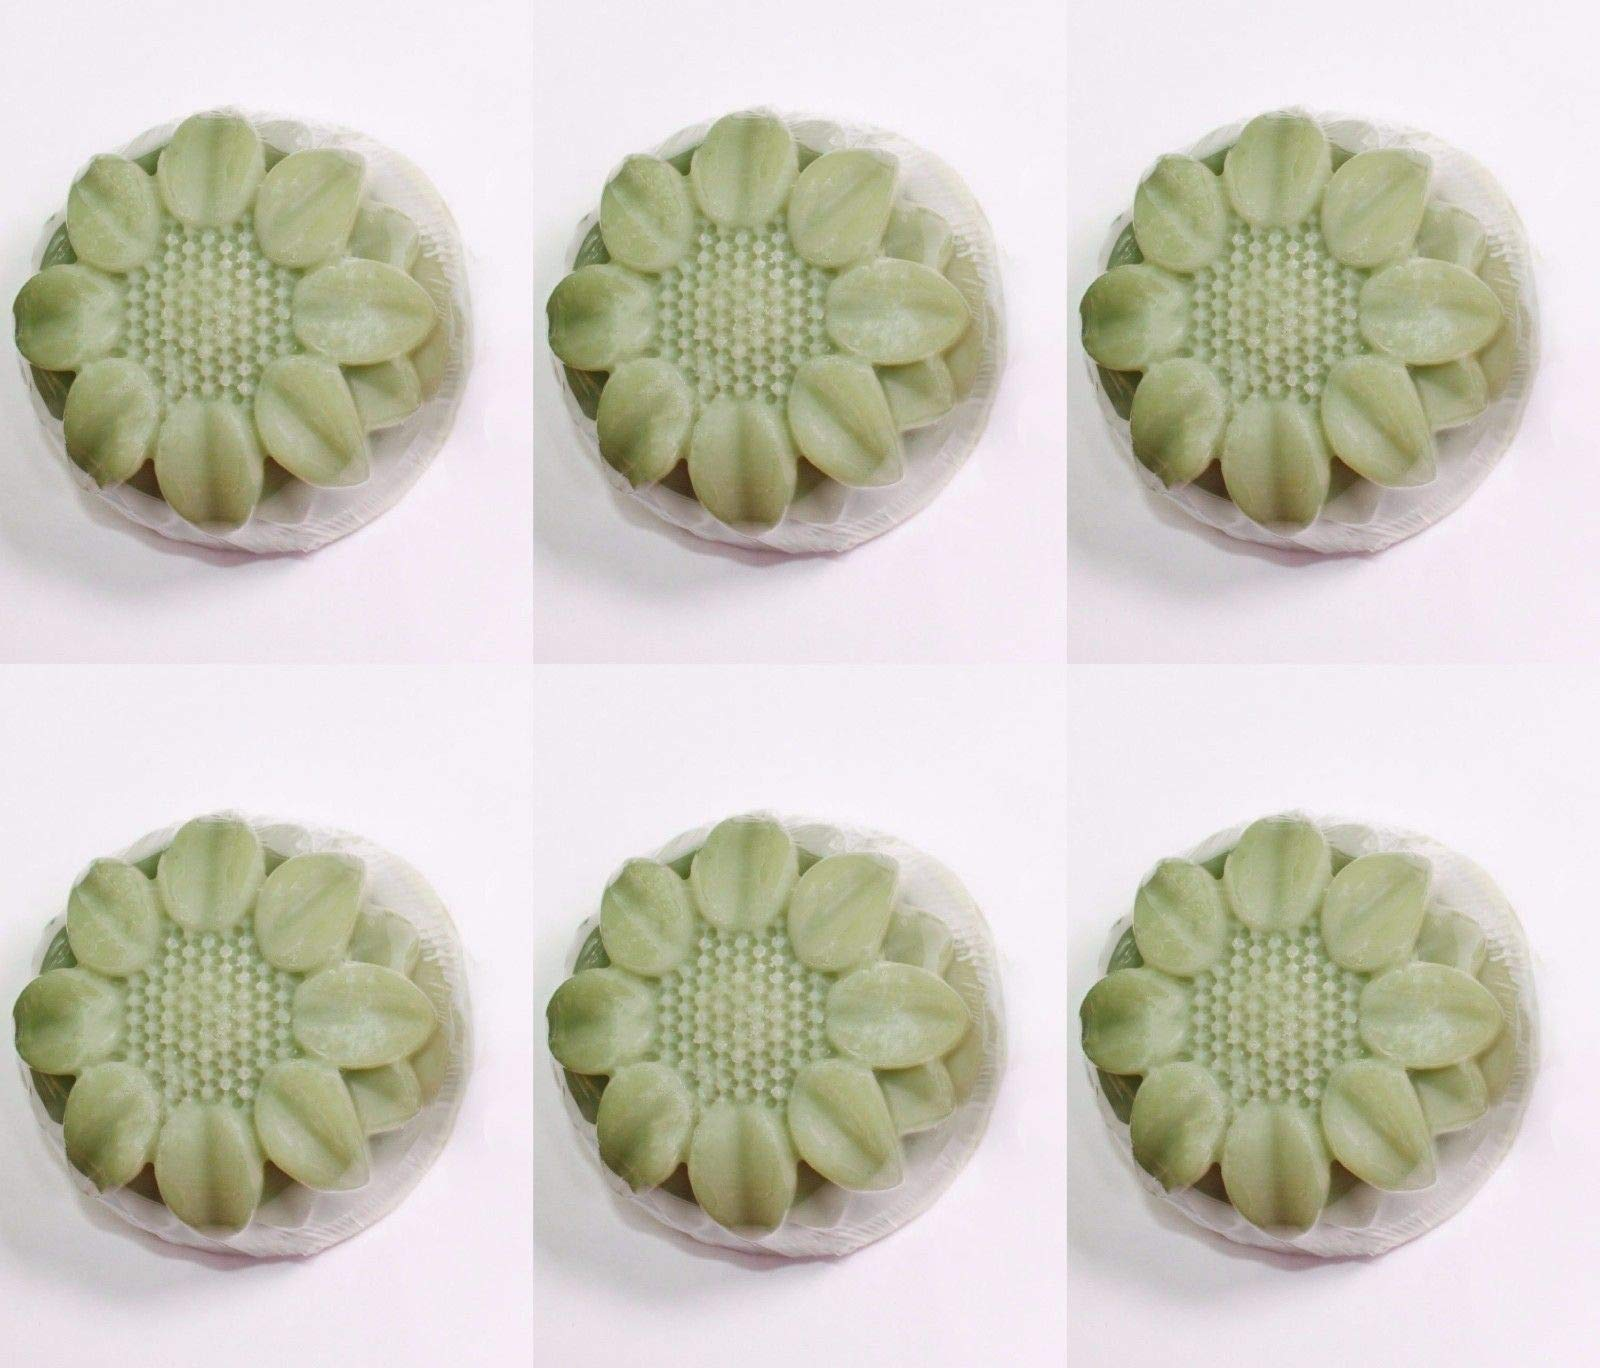 6 Cavity Flower Silicone DIY Handmade Soap Mold Sunflower US Seller